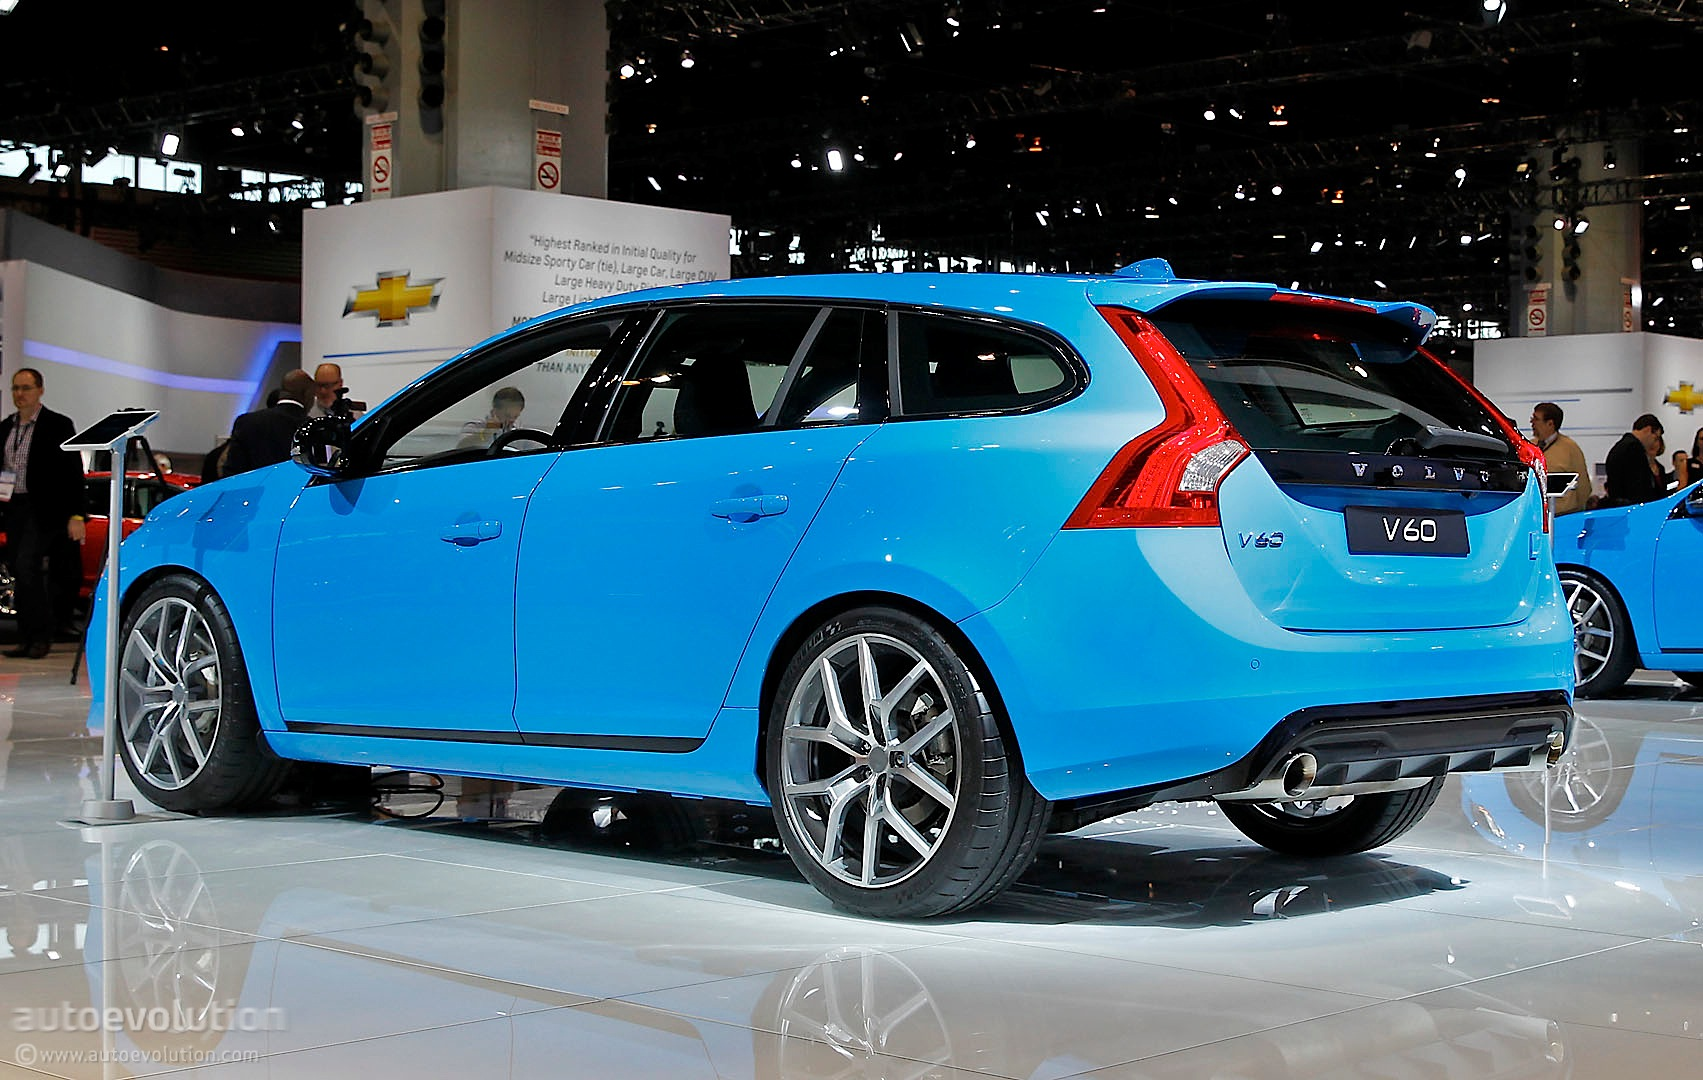 Volvo V60 Polestar Is a Blue Wagon in Chicago [Live Photo] - autoevolution